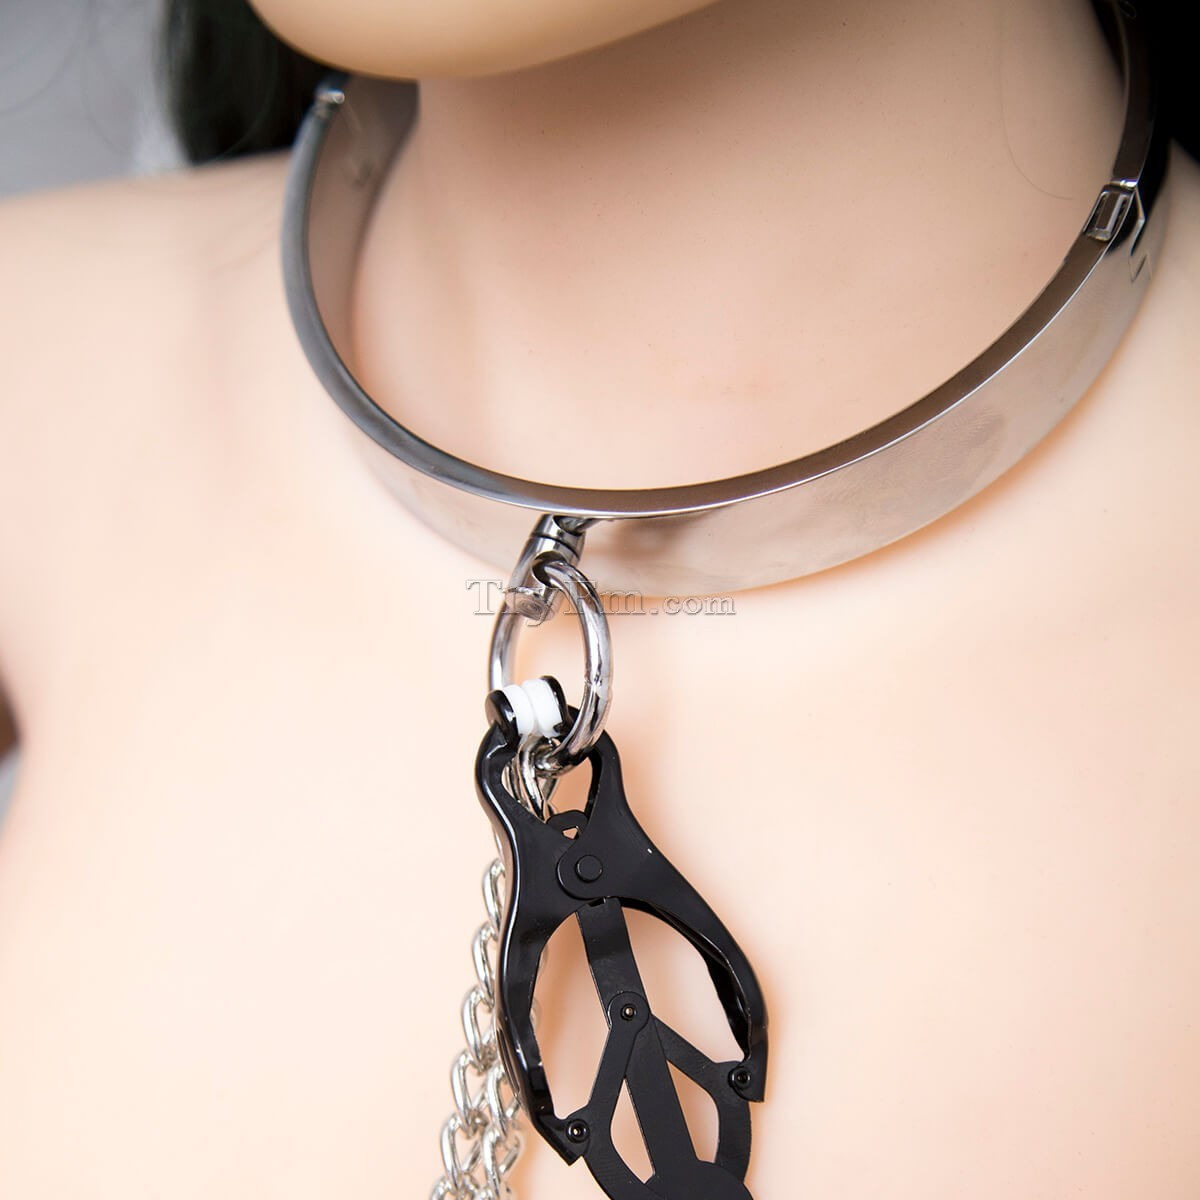 9-metal-neck-collar-with-nipple-clamps-7.jpg